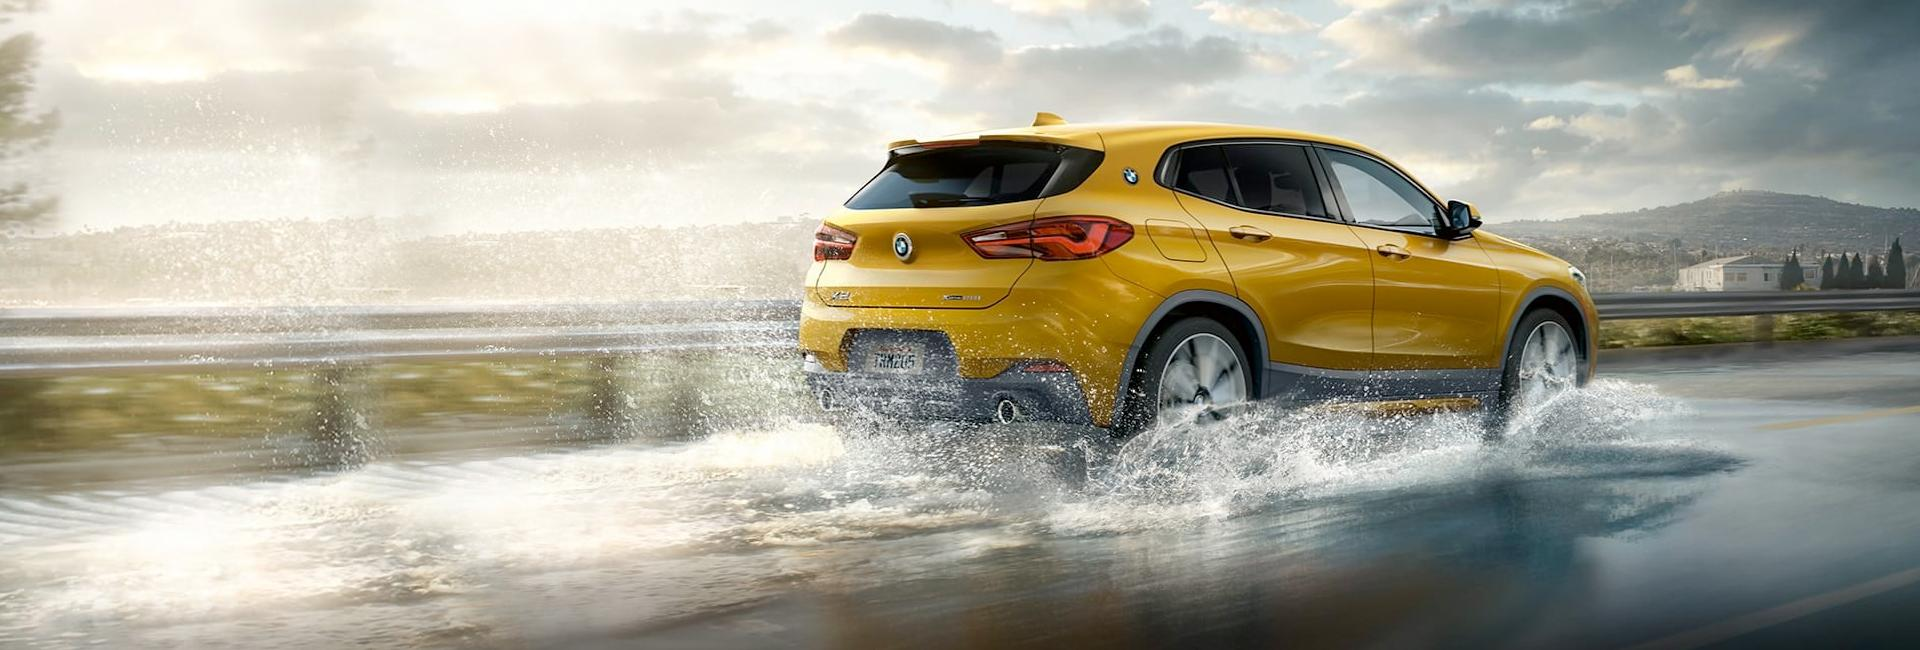 Rear view of the 2021 BMW X2 in motion in the rain